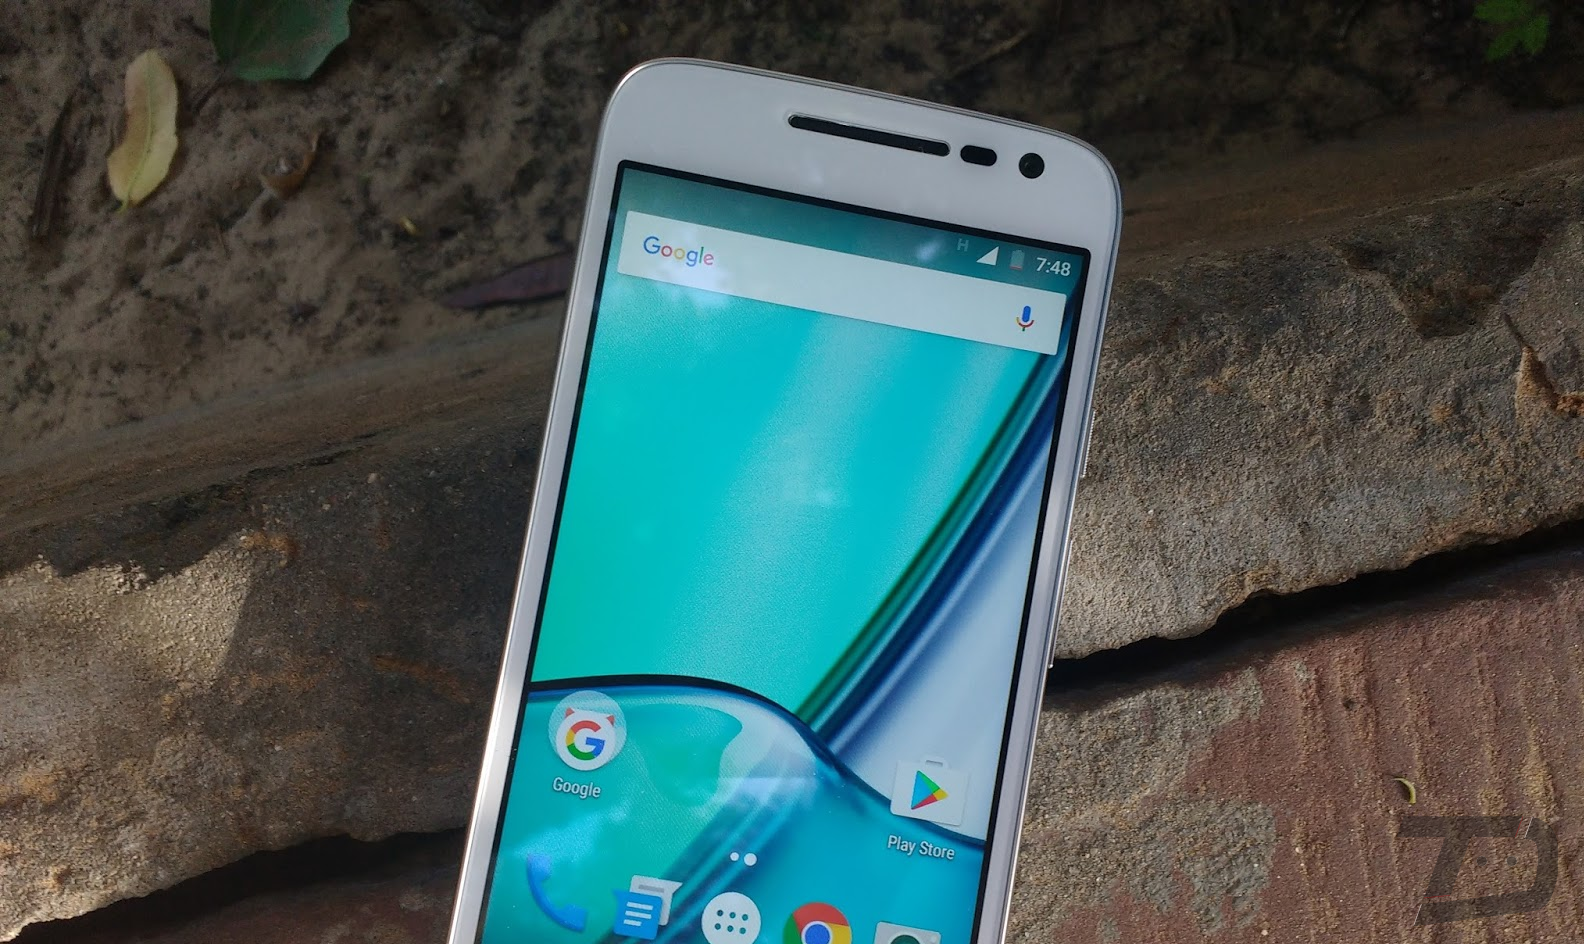 Moto G4 Play Android 7.0 Nougat Update due in June